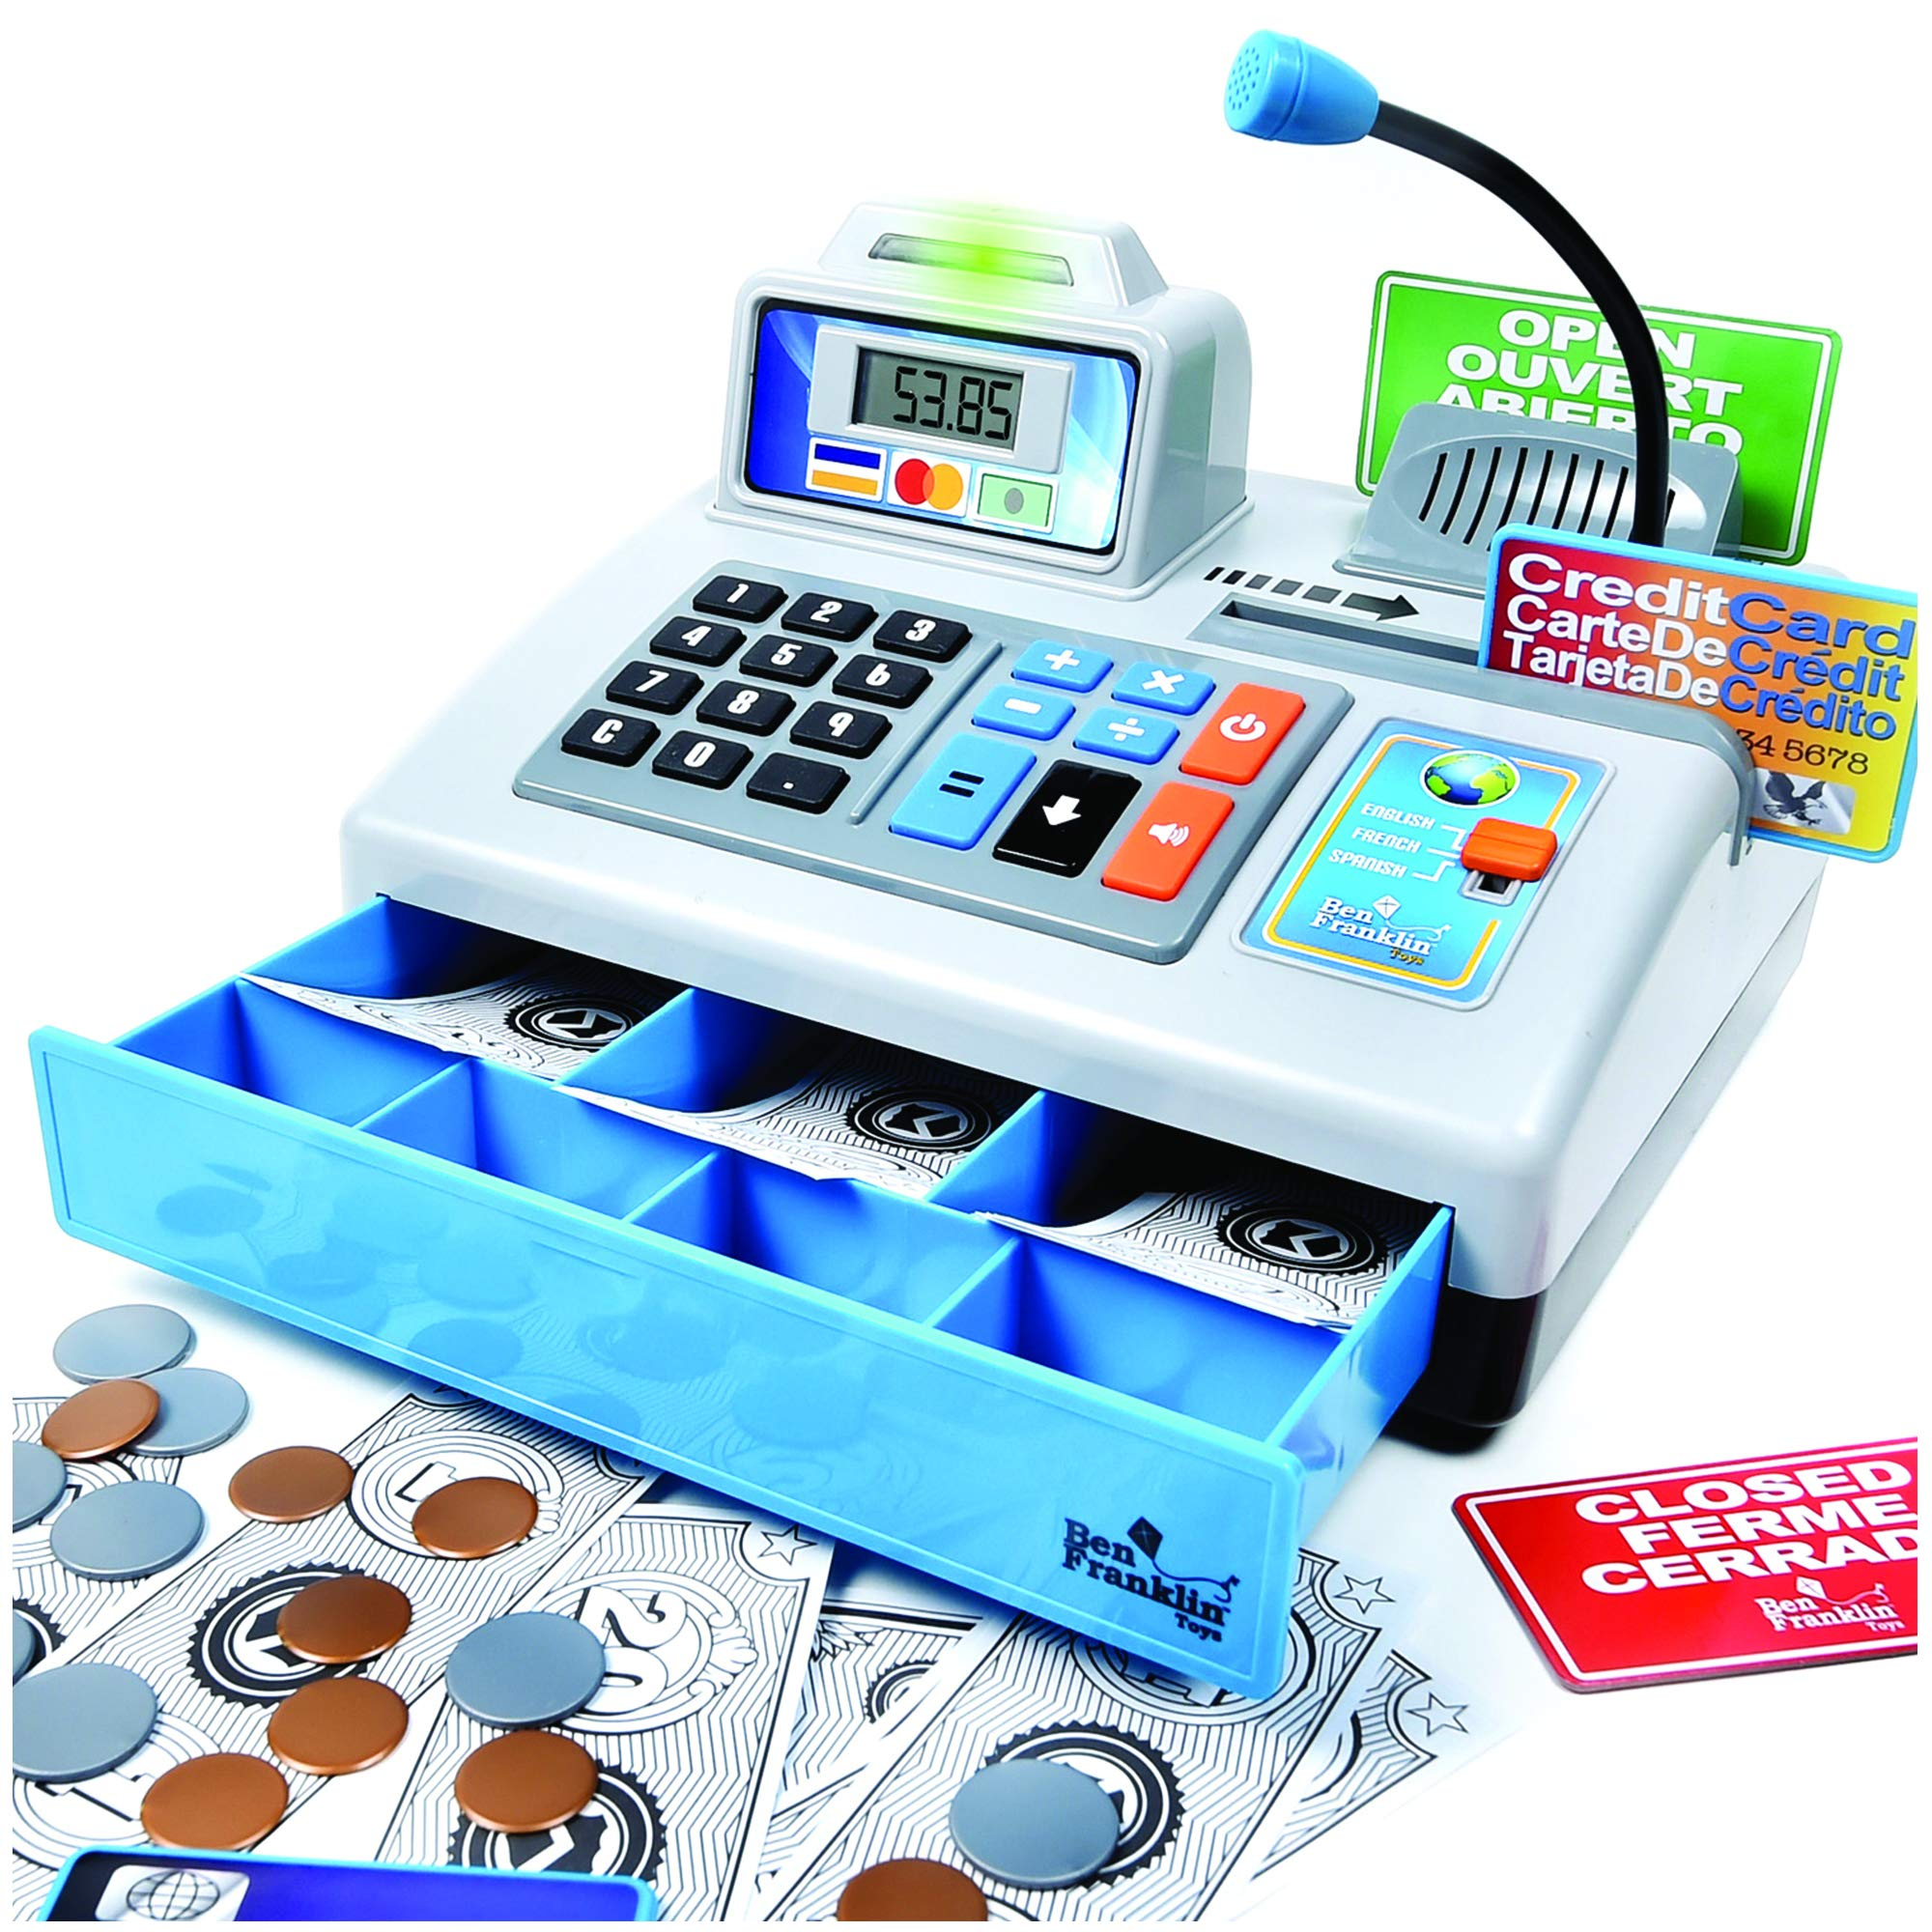 Ben Franklin Toys Talking Toy Cash Register - STEM Learning 69 Piece Pretend Store with 3 Languages, Paging Microphone, Credit Card, Bank Card, Play Money and Banking for Kids, Silver by Ben Franklin Toys